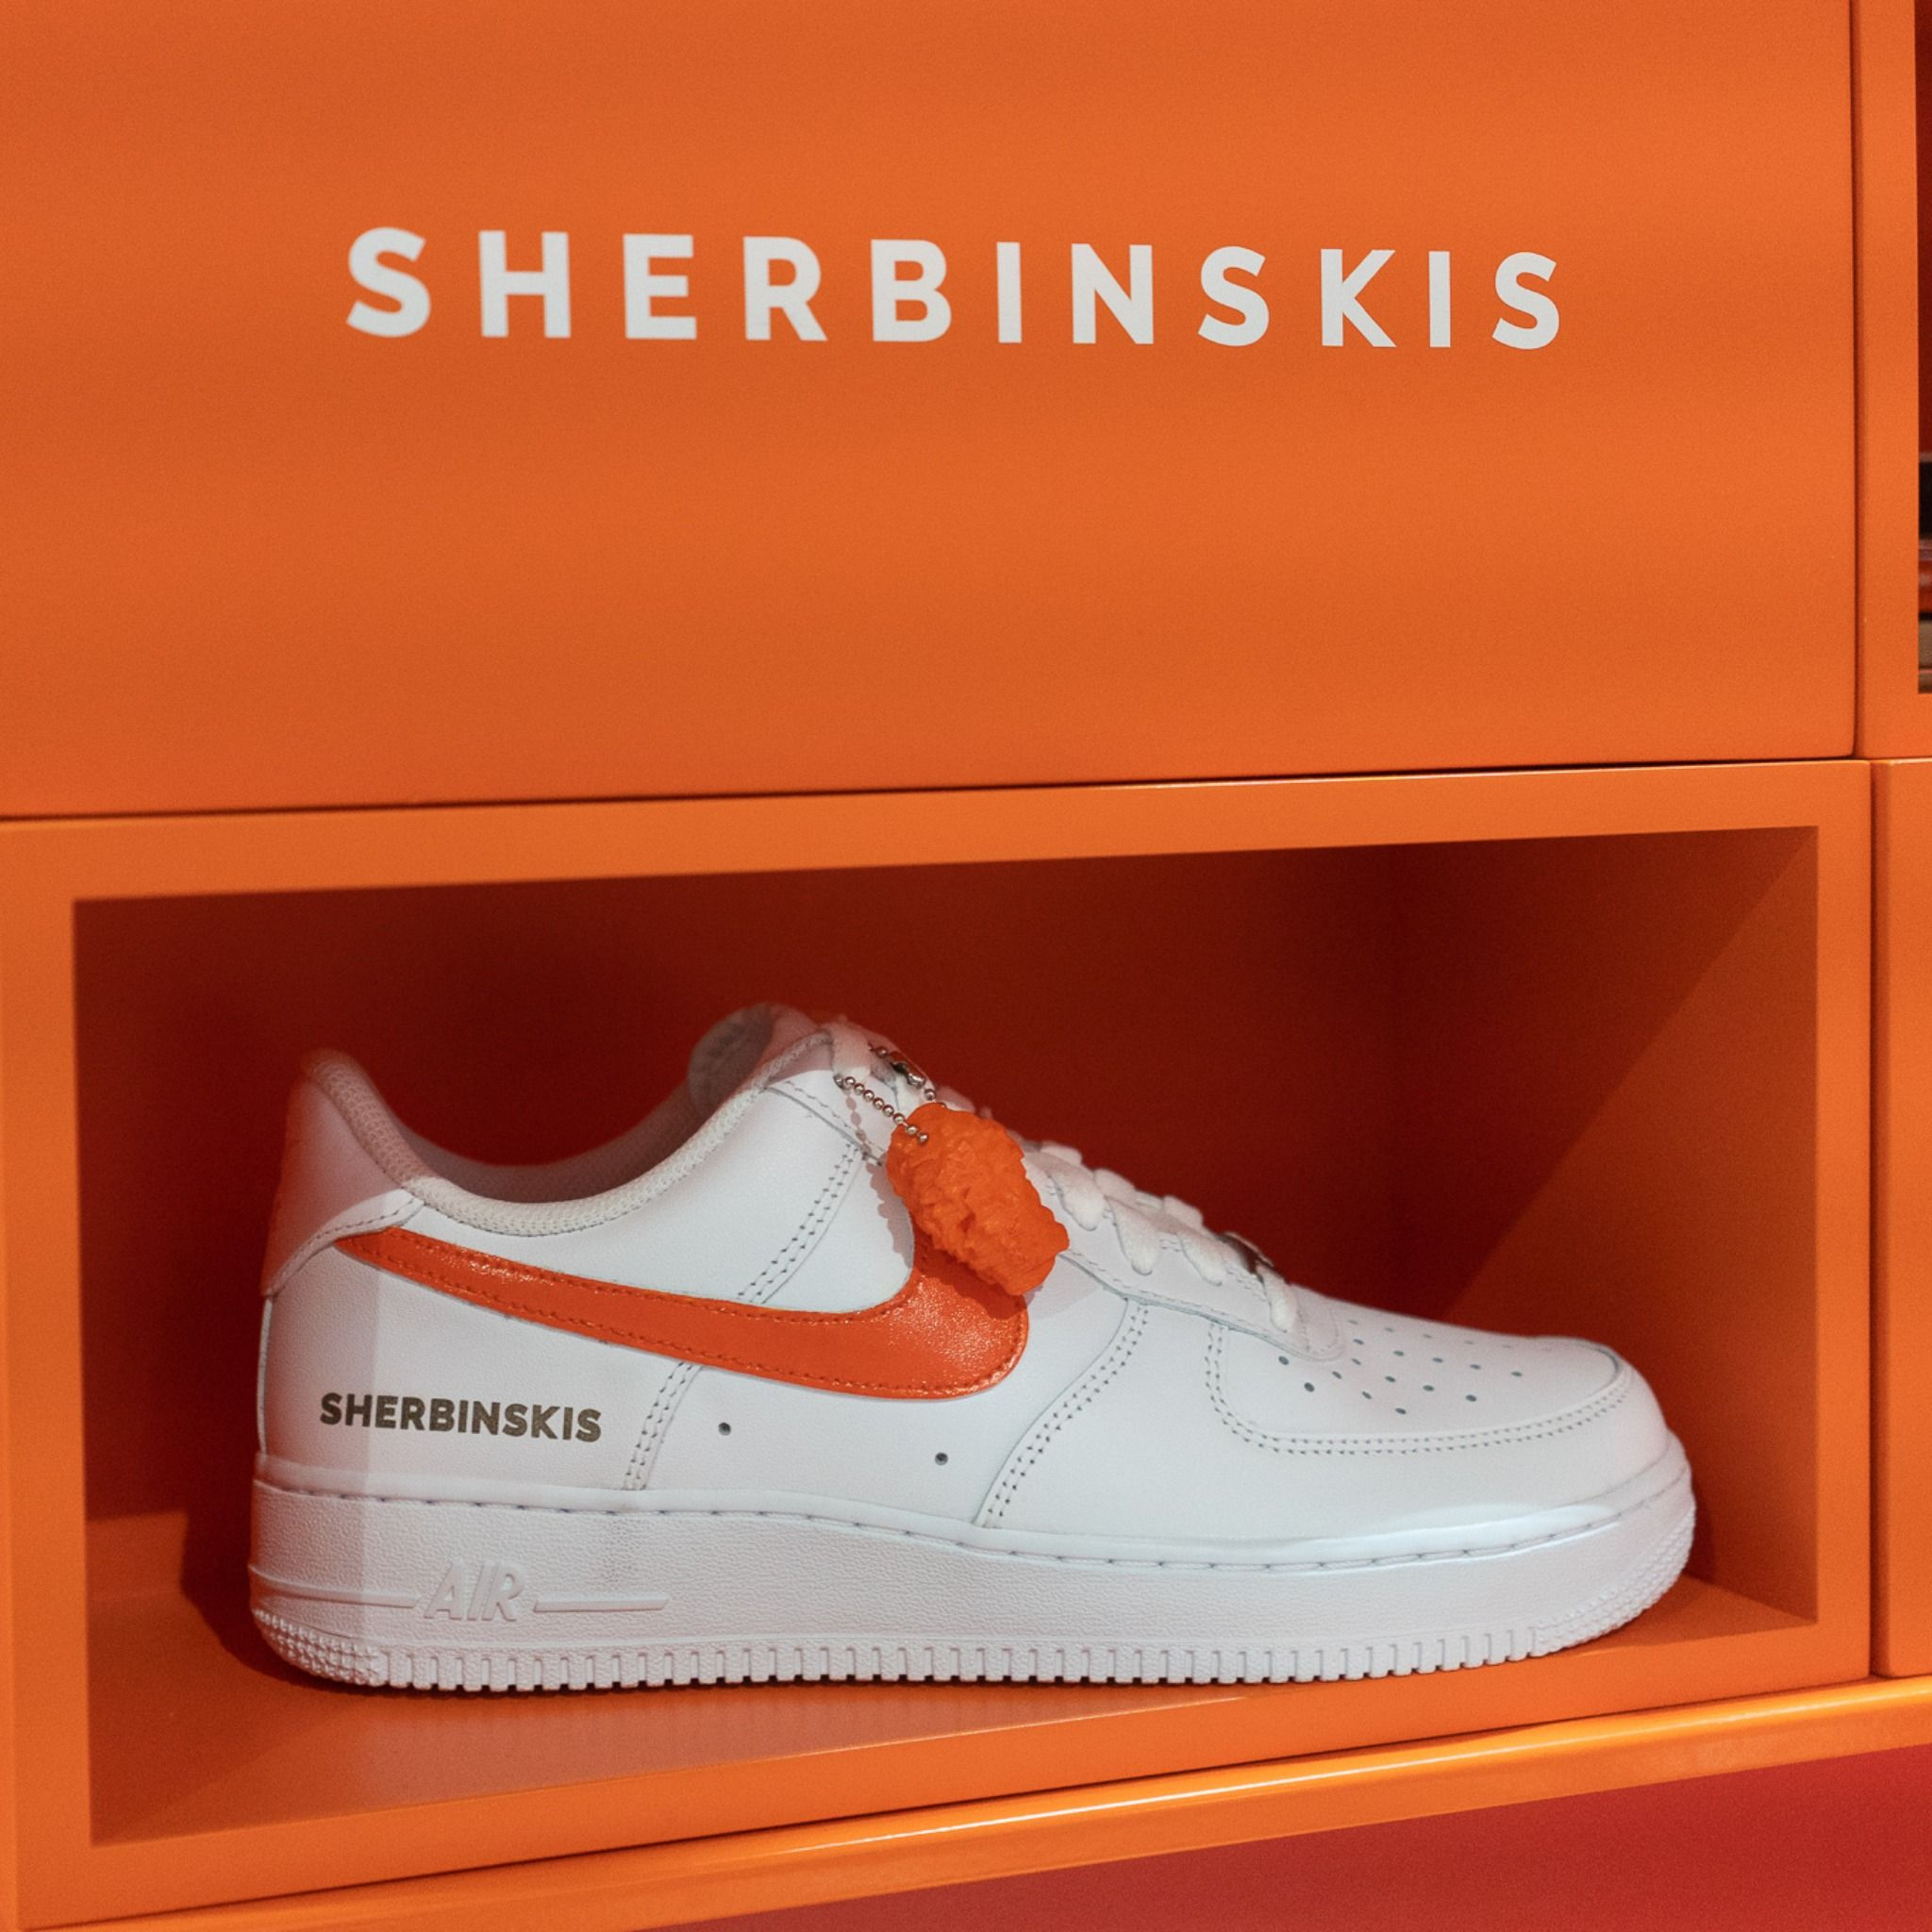 SHERBINSKIS Nike Air Force 1 Bespoke released exclusively